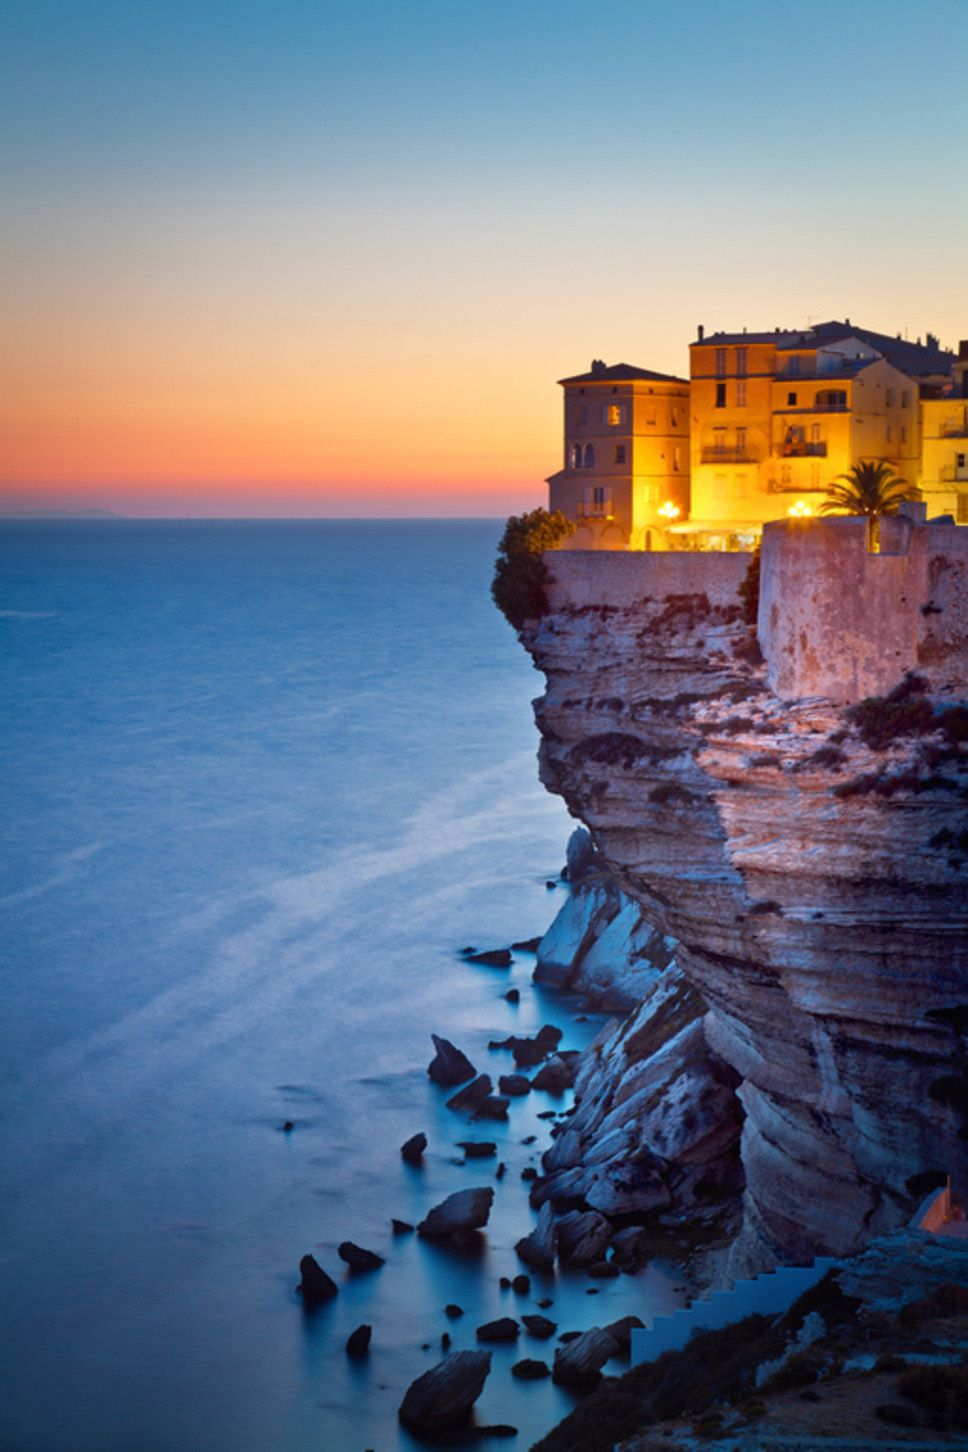 Bonifacio Corse France Love Corsica We Had A Magical Evening Under The Fireworks In This Town